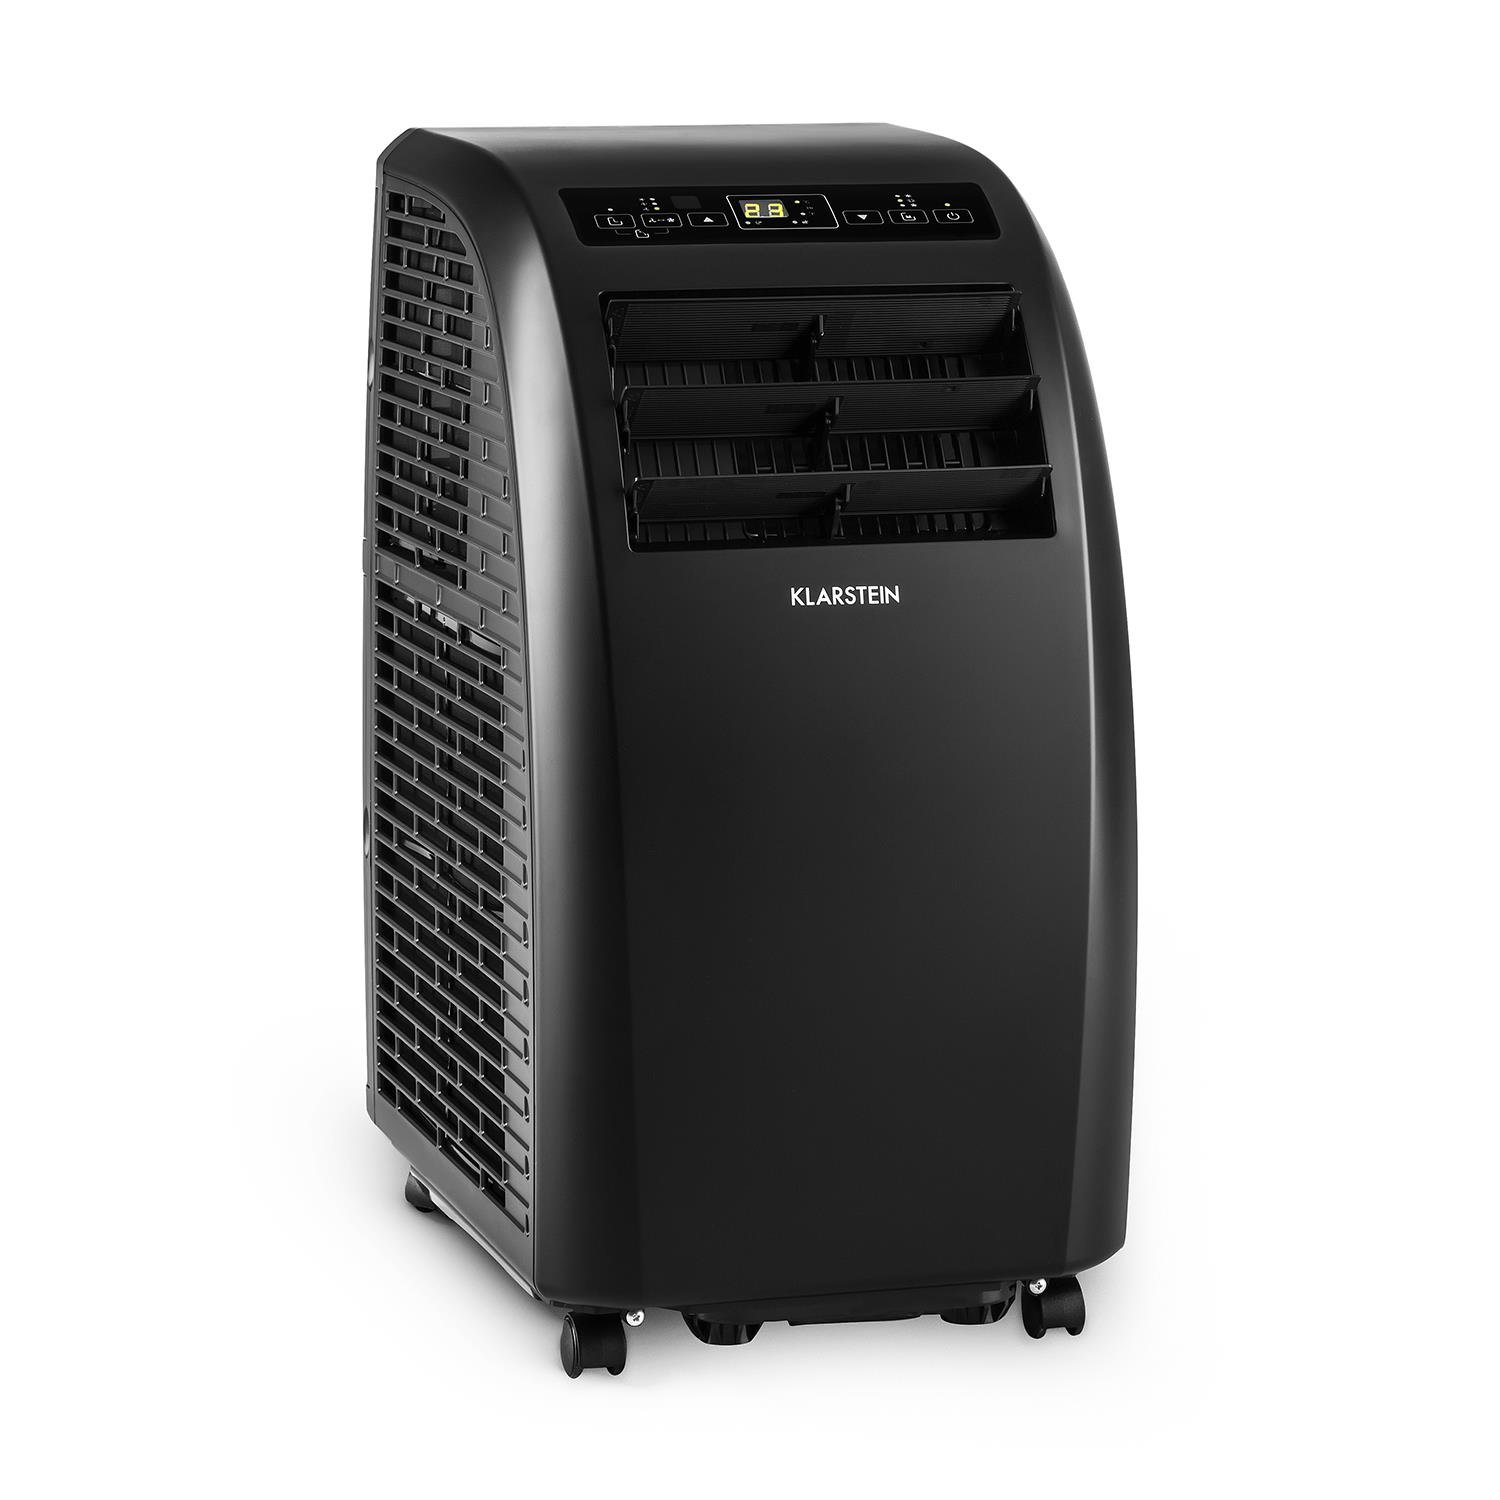 Klarstein Metrobreeze Rome • Air Conditioner • Cooling • Fan • Dehumidifier • 10.000 BTU • A+ • Temperatures 18-30 ° C • 3-Stage Fan • 3 Modes • 2 Timer • Remote • Black